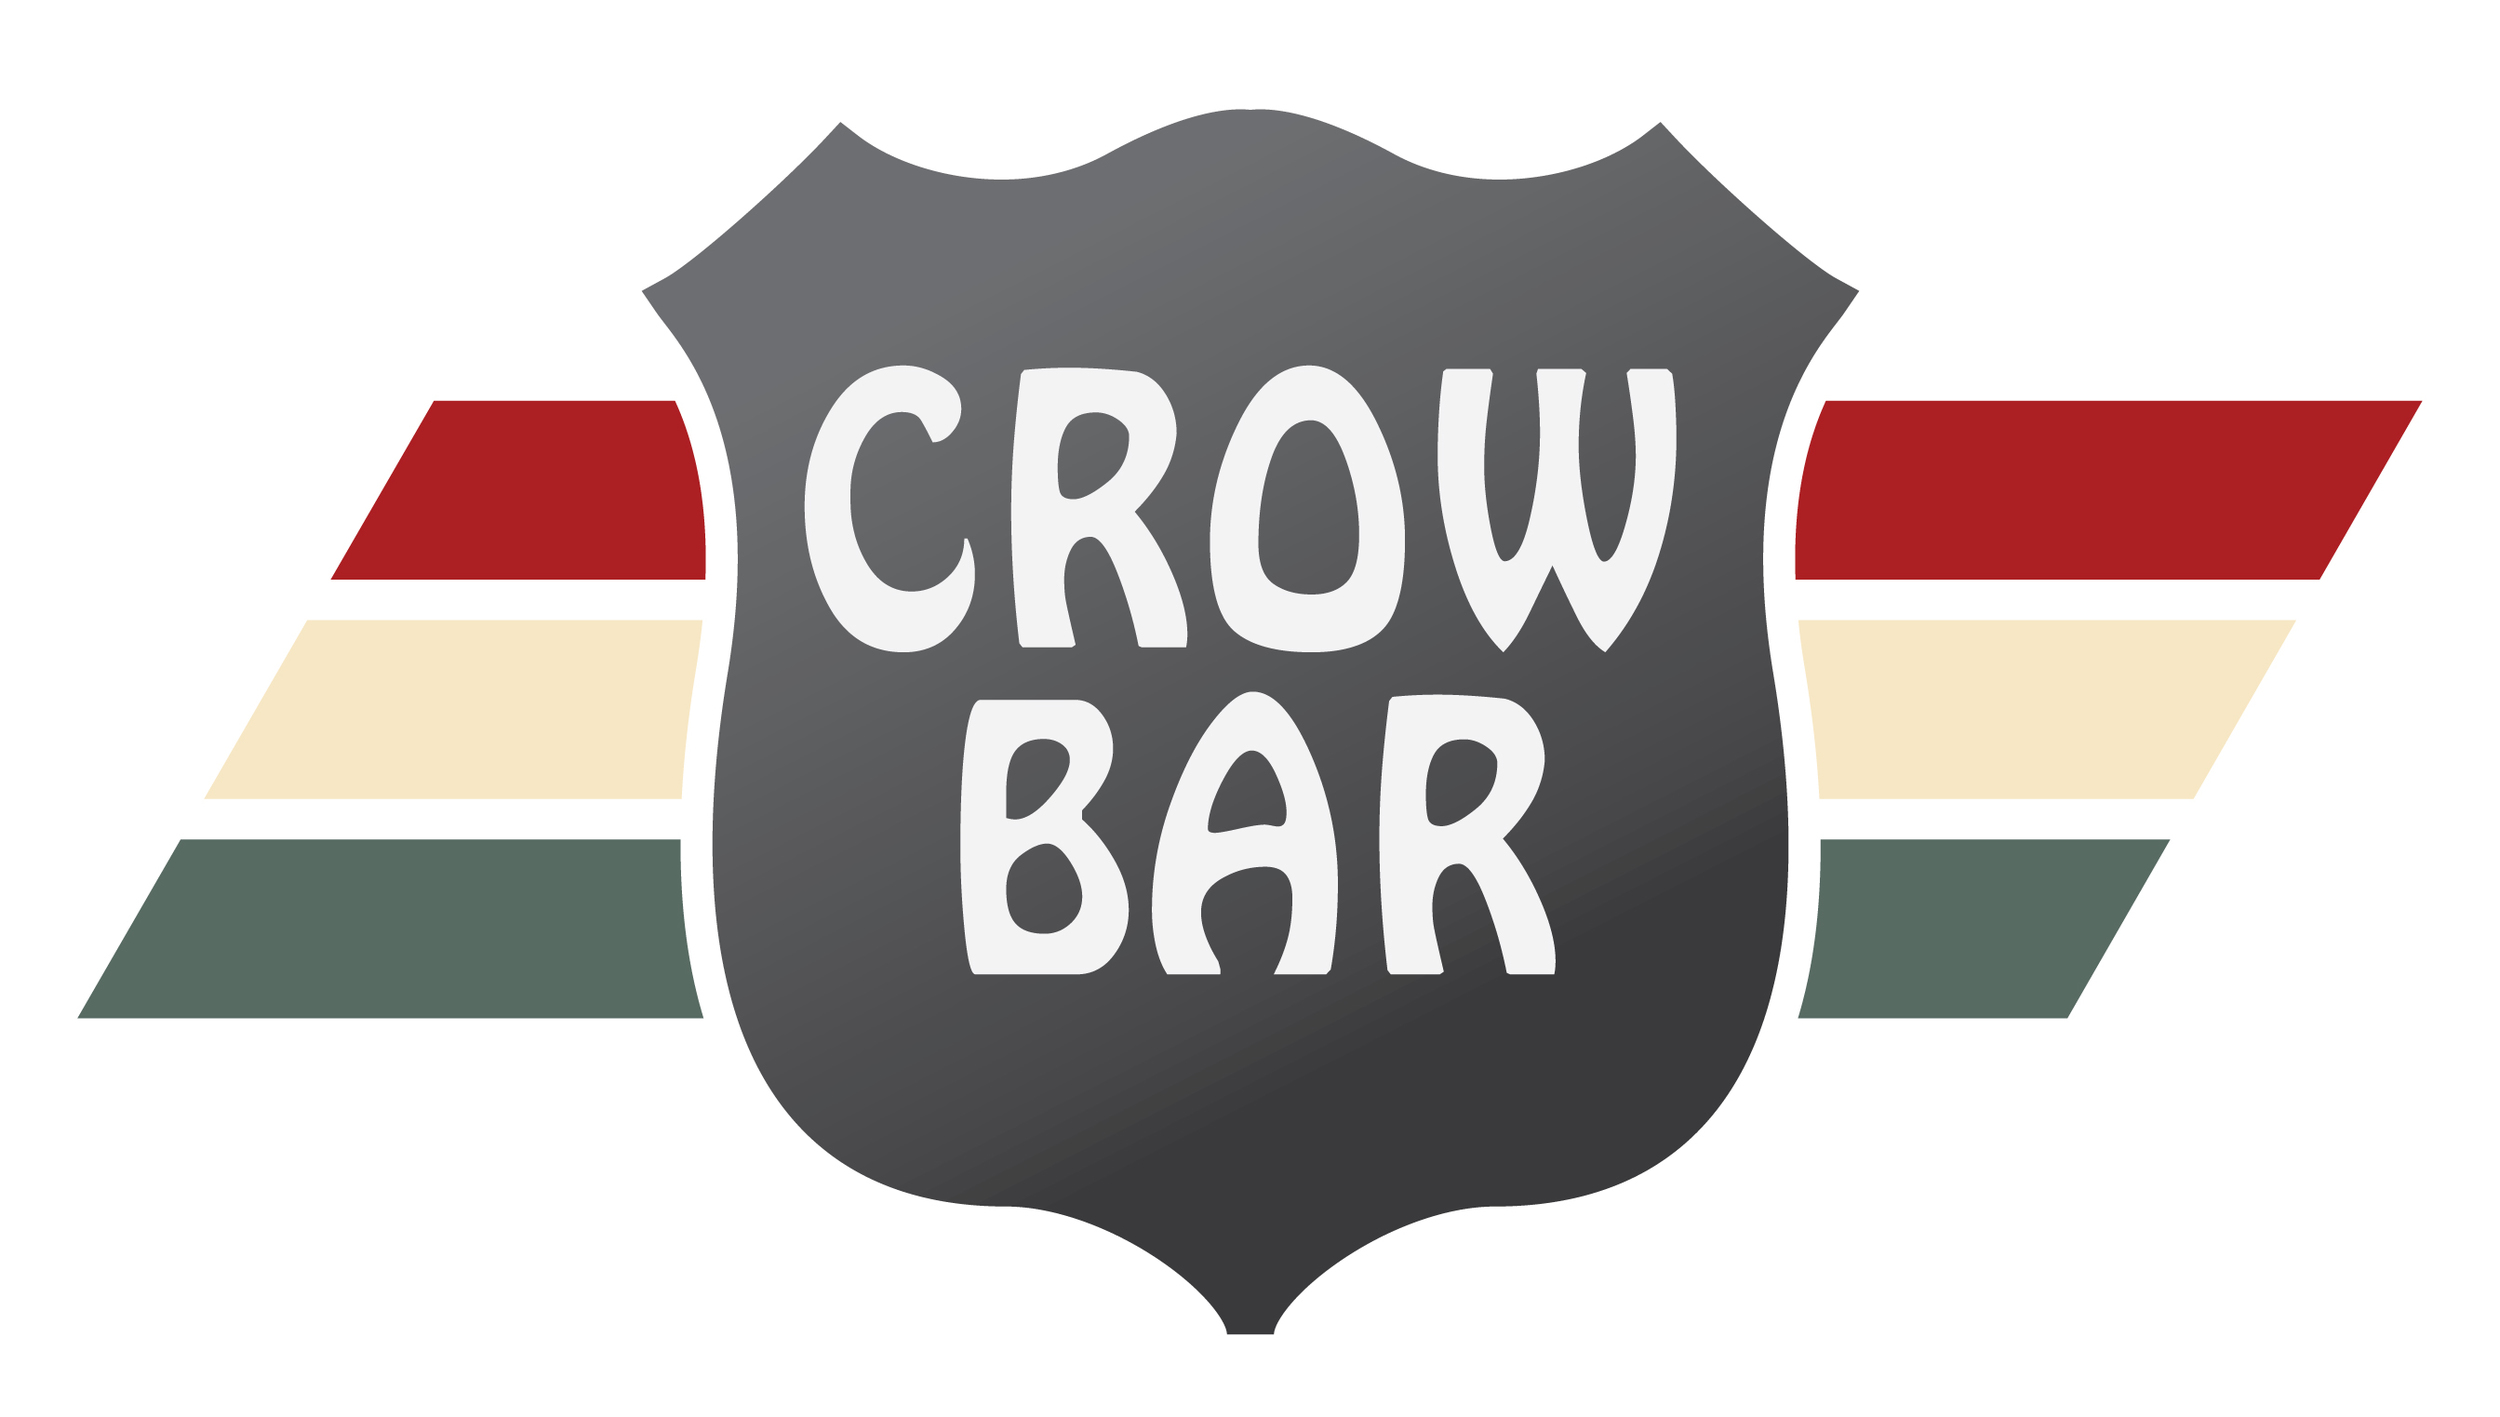 Crow Bar logo redesign by joe horvath of josephhorvath.com